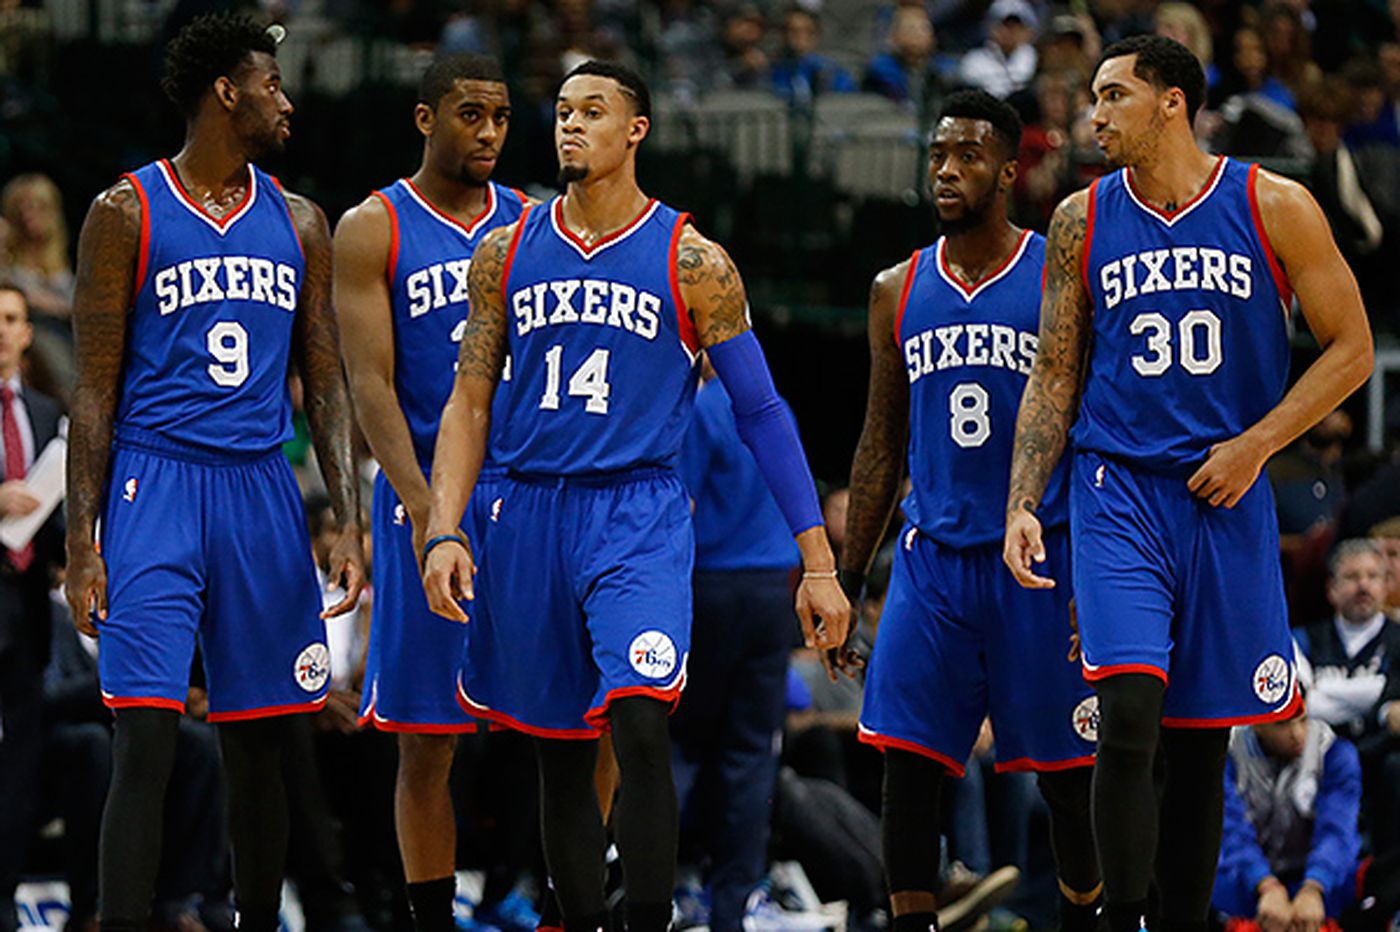 Inside the Sixers: Veterans could help, may not be good fit